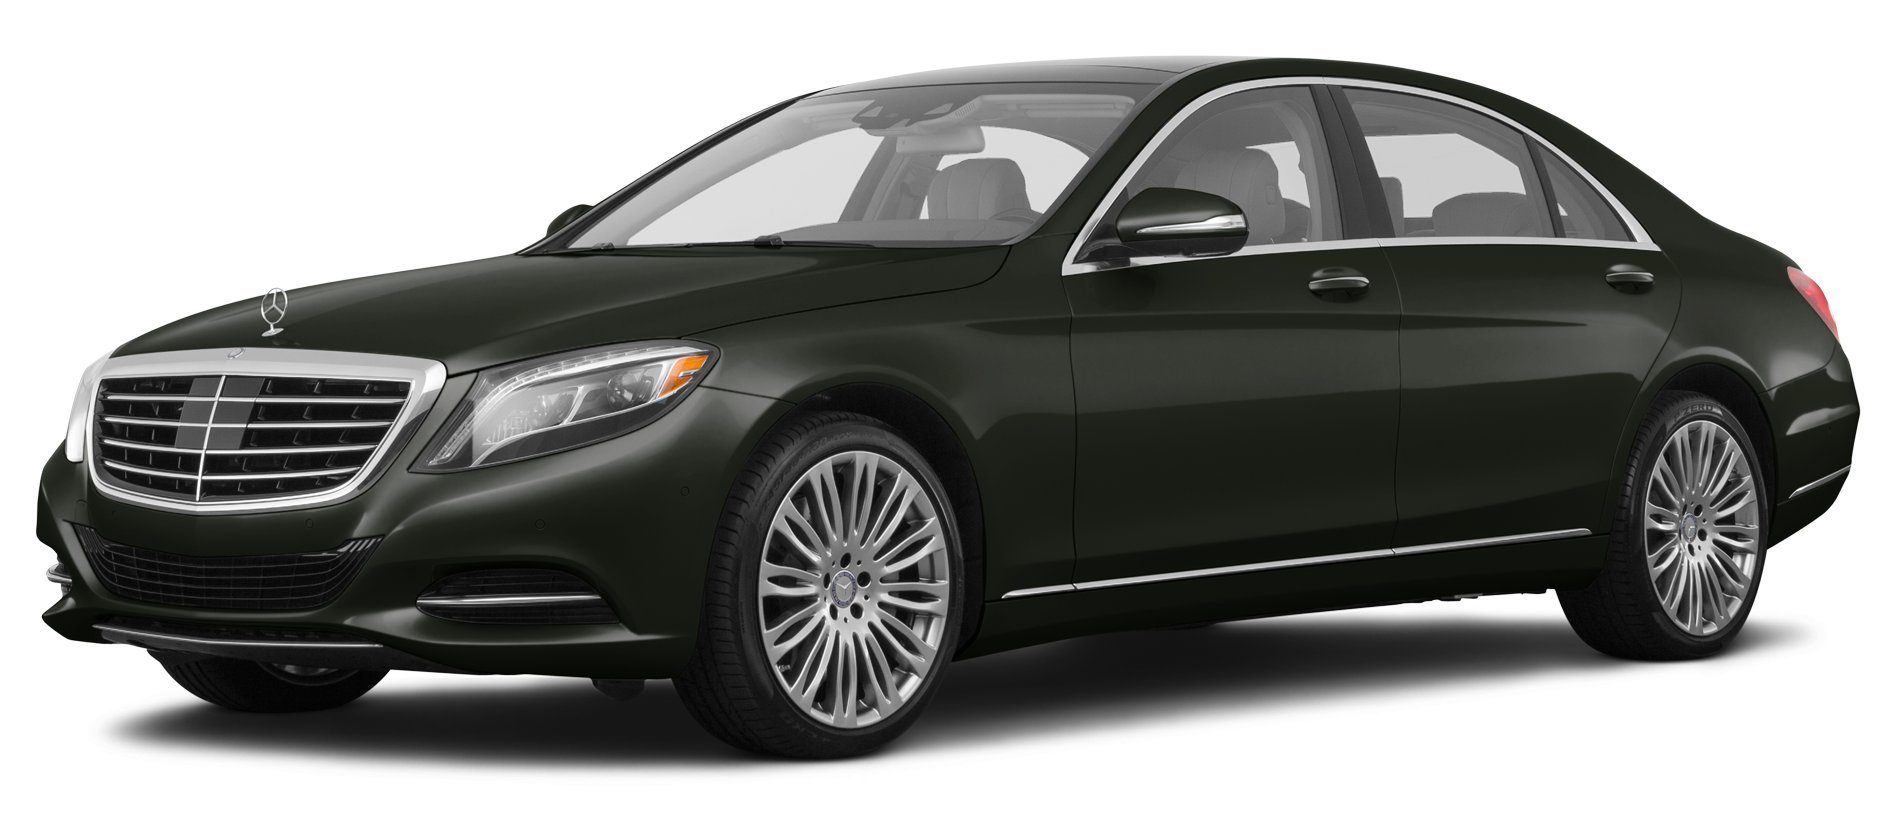 2017 mercedes benz maybach s600 reviews for Mercedes benz s600 amg